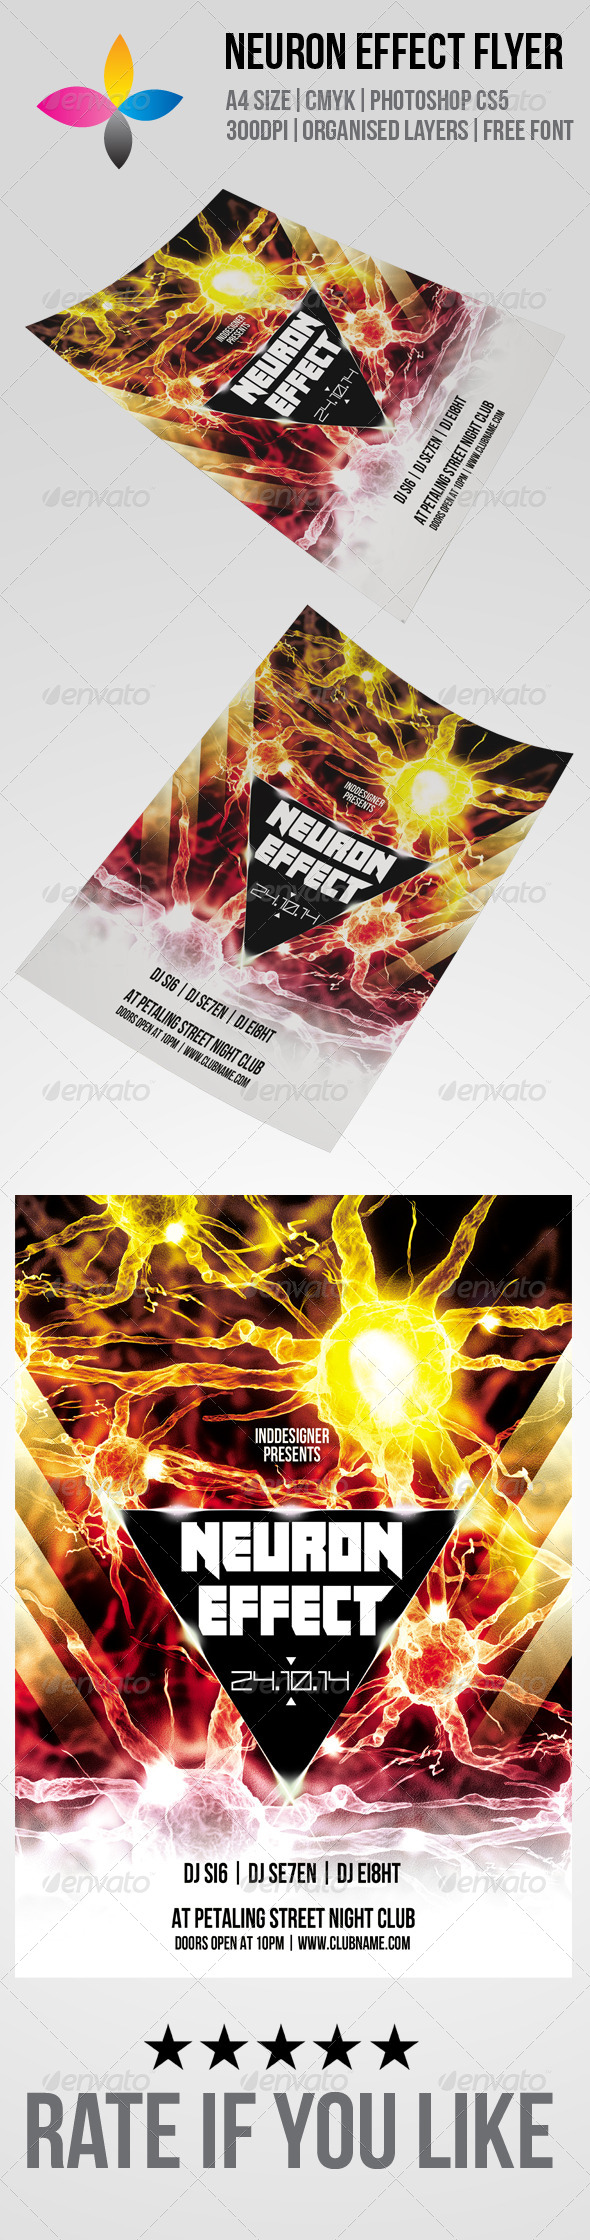 GraphicRiver Neuron Effect Flyer 6298511